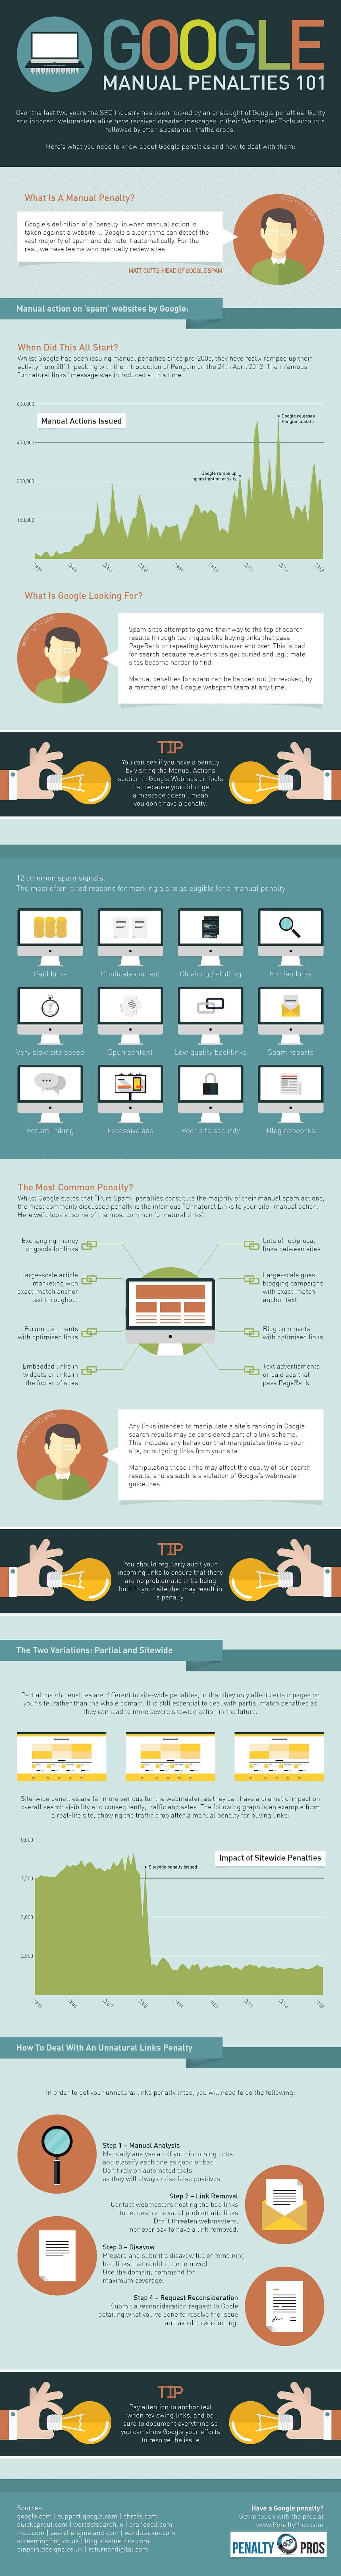 12 Website Spam Signals To Avoid Infographic In 2020 Digital Marketing Infographics Infographic Marketing Infographic